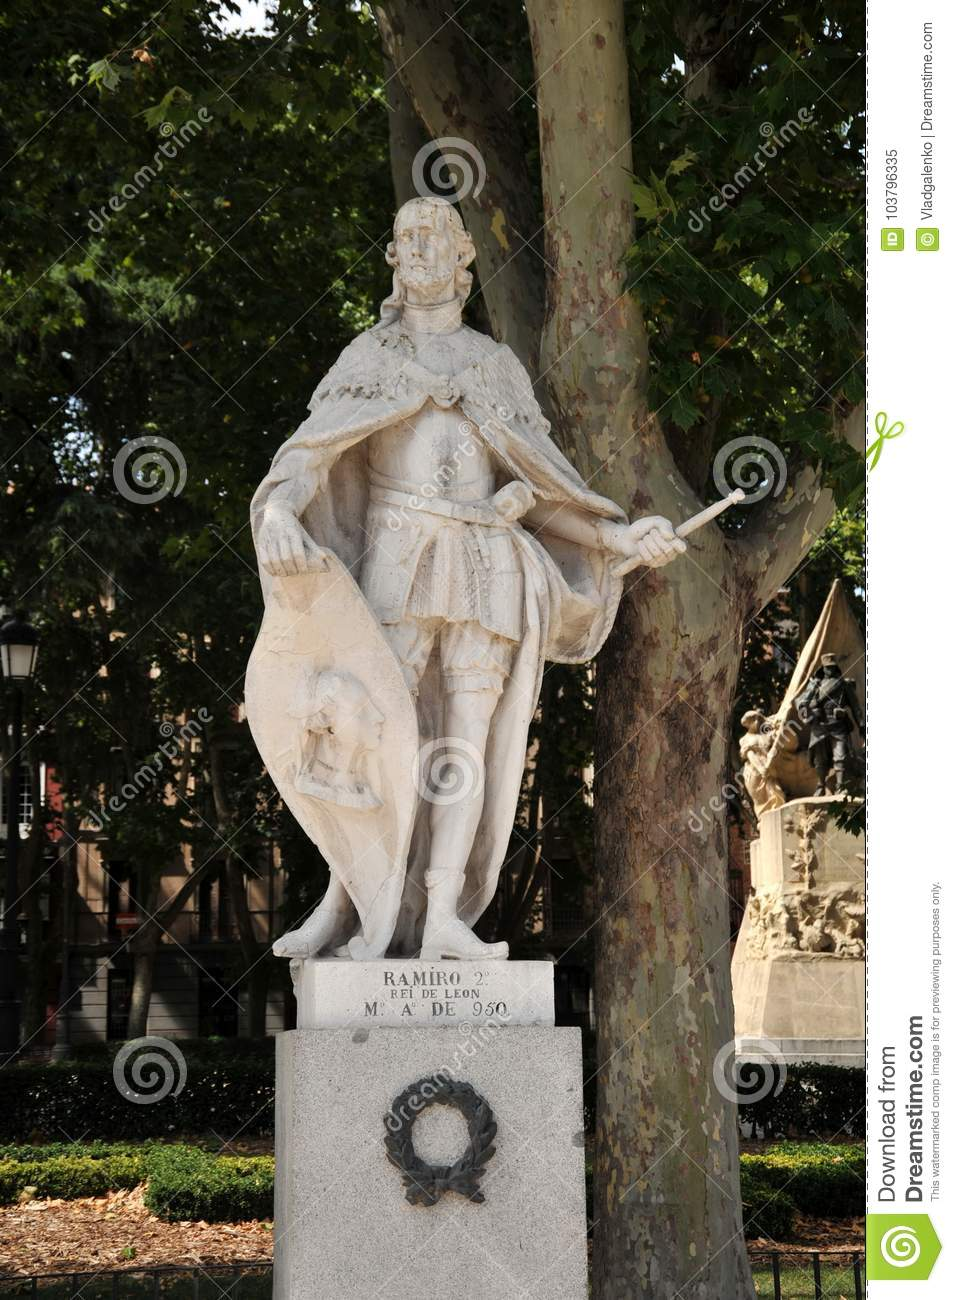 Statue of Ramiro II, King of Leon. on the eastern square of Plaza de Oriente in Madrid.